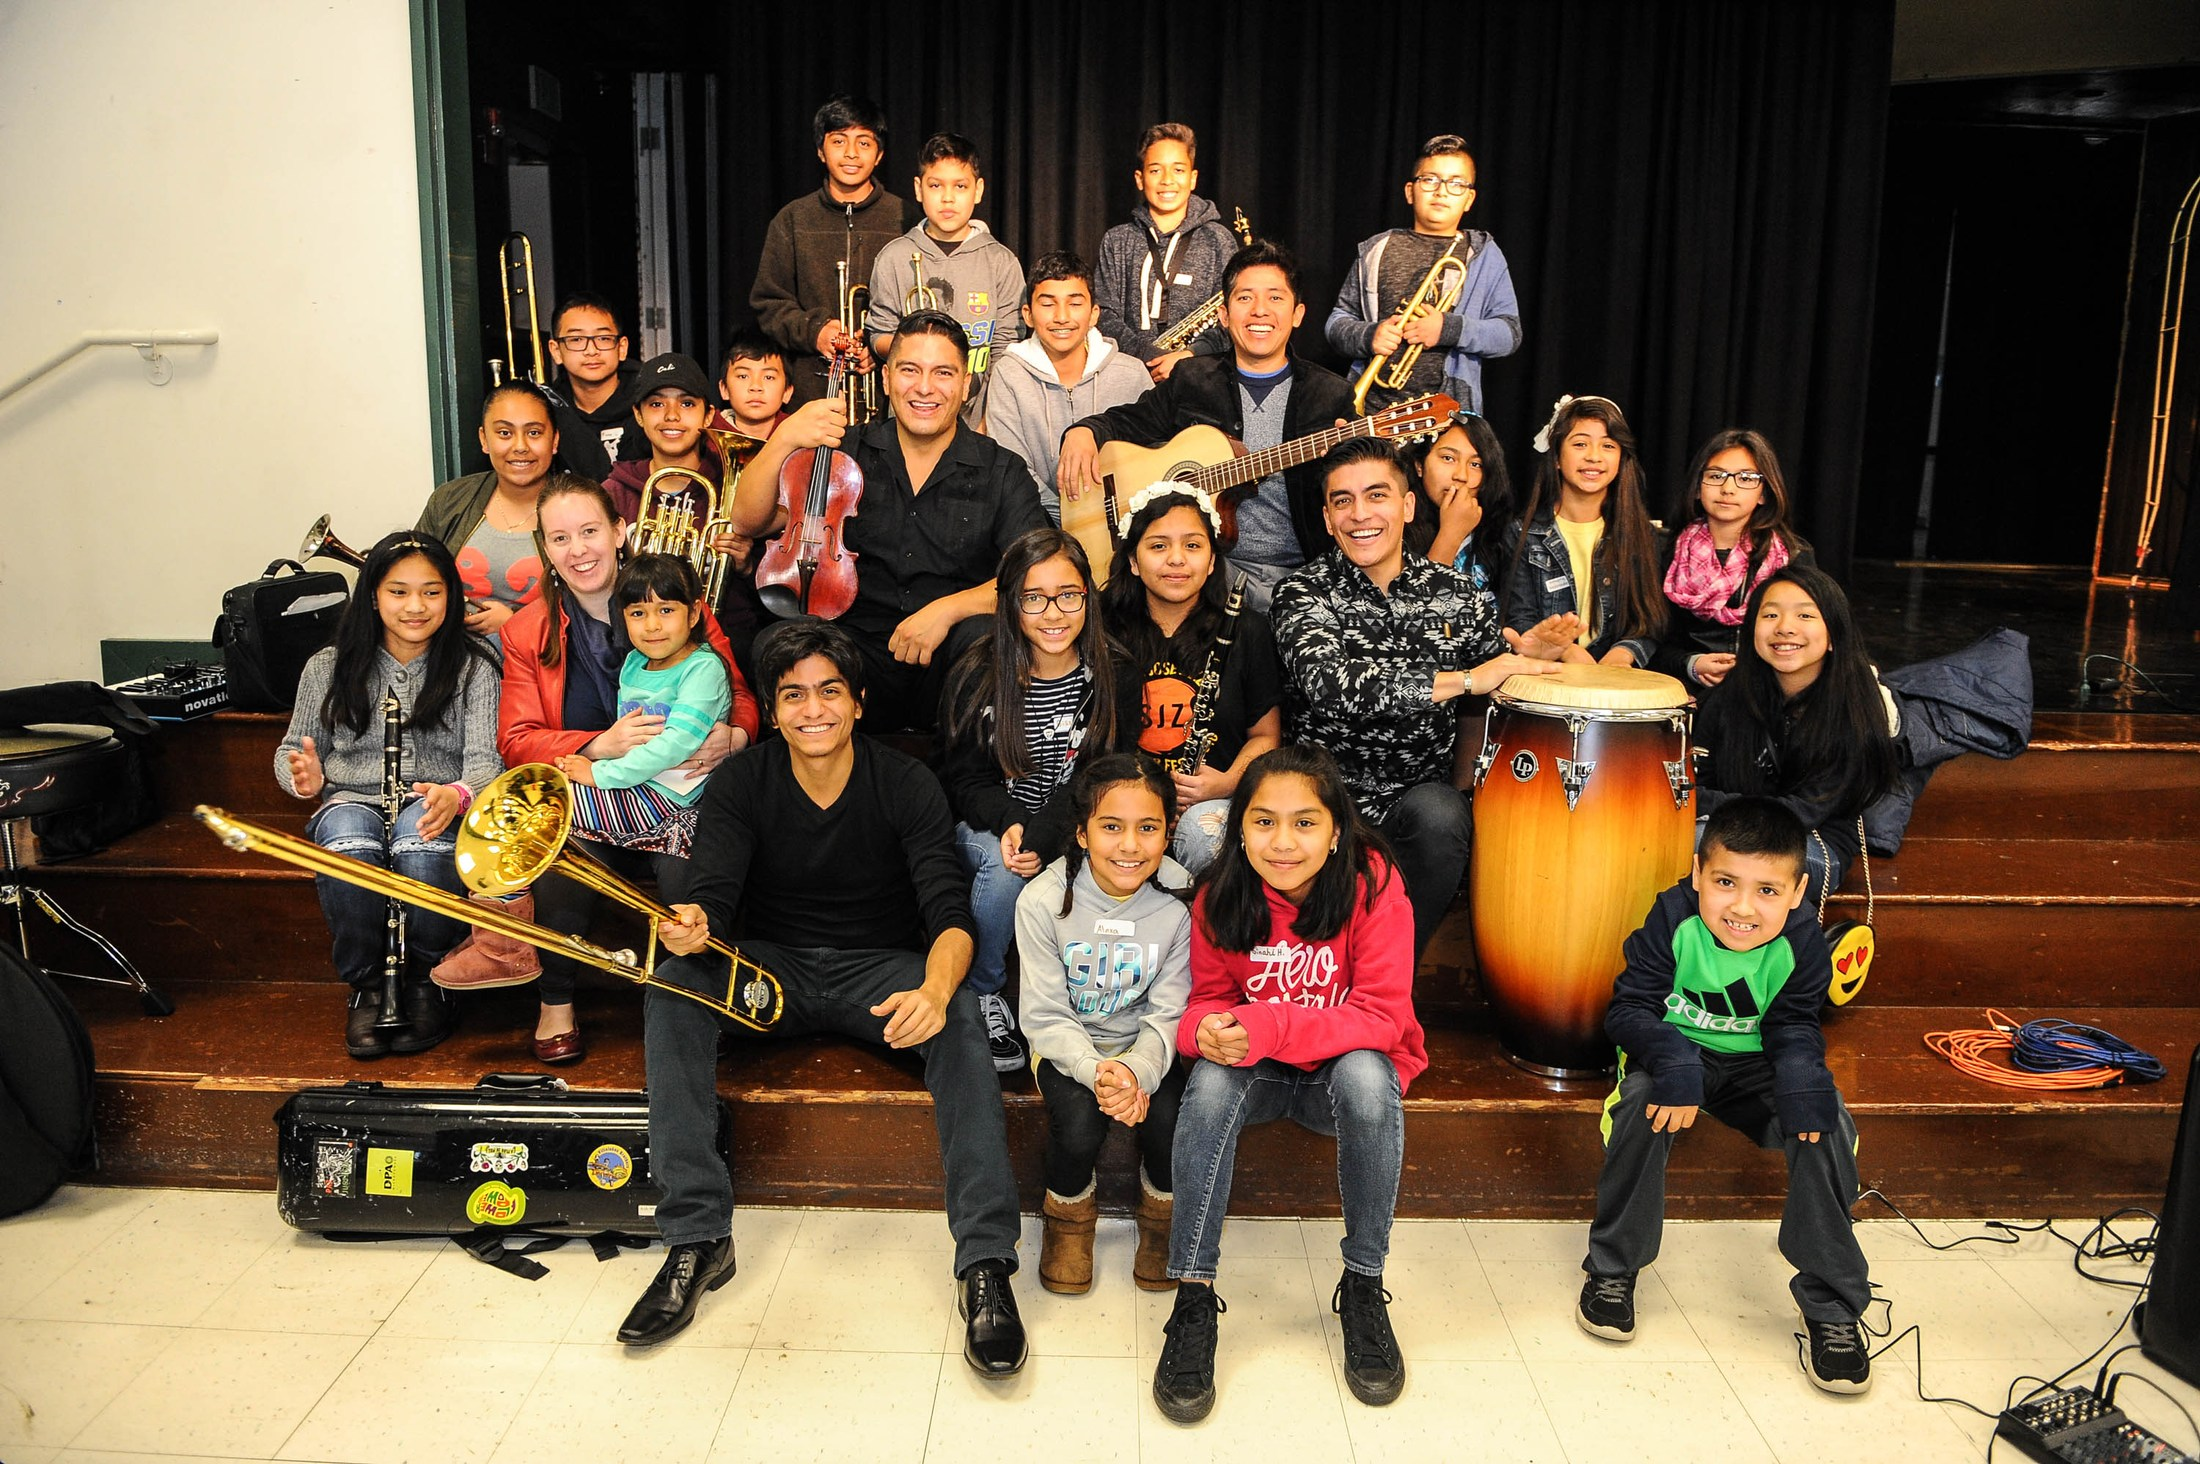 students picture with their instruments